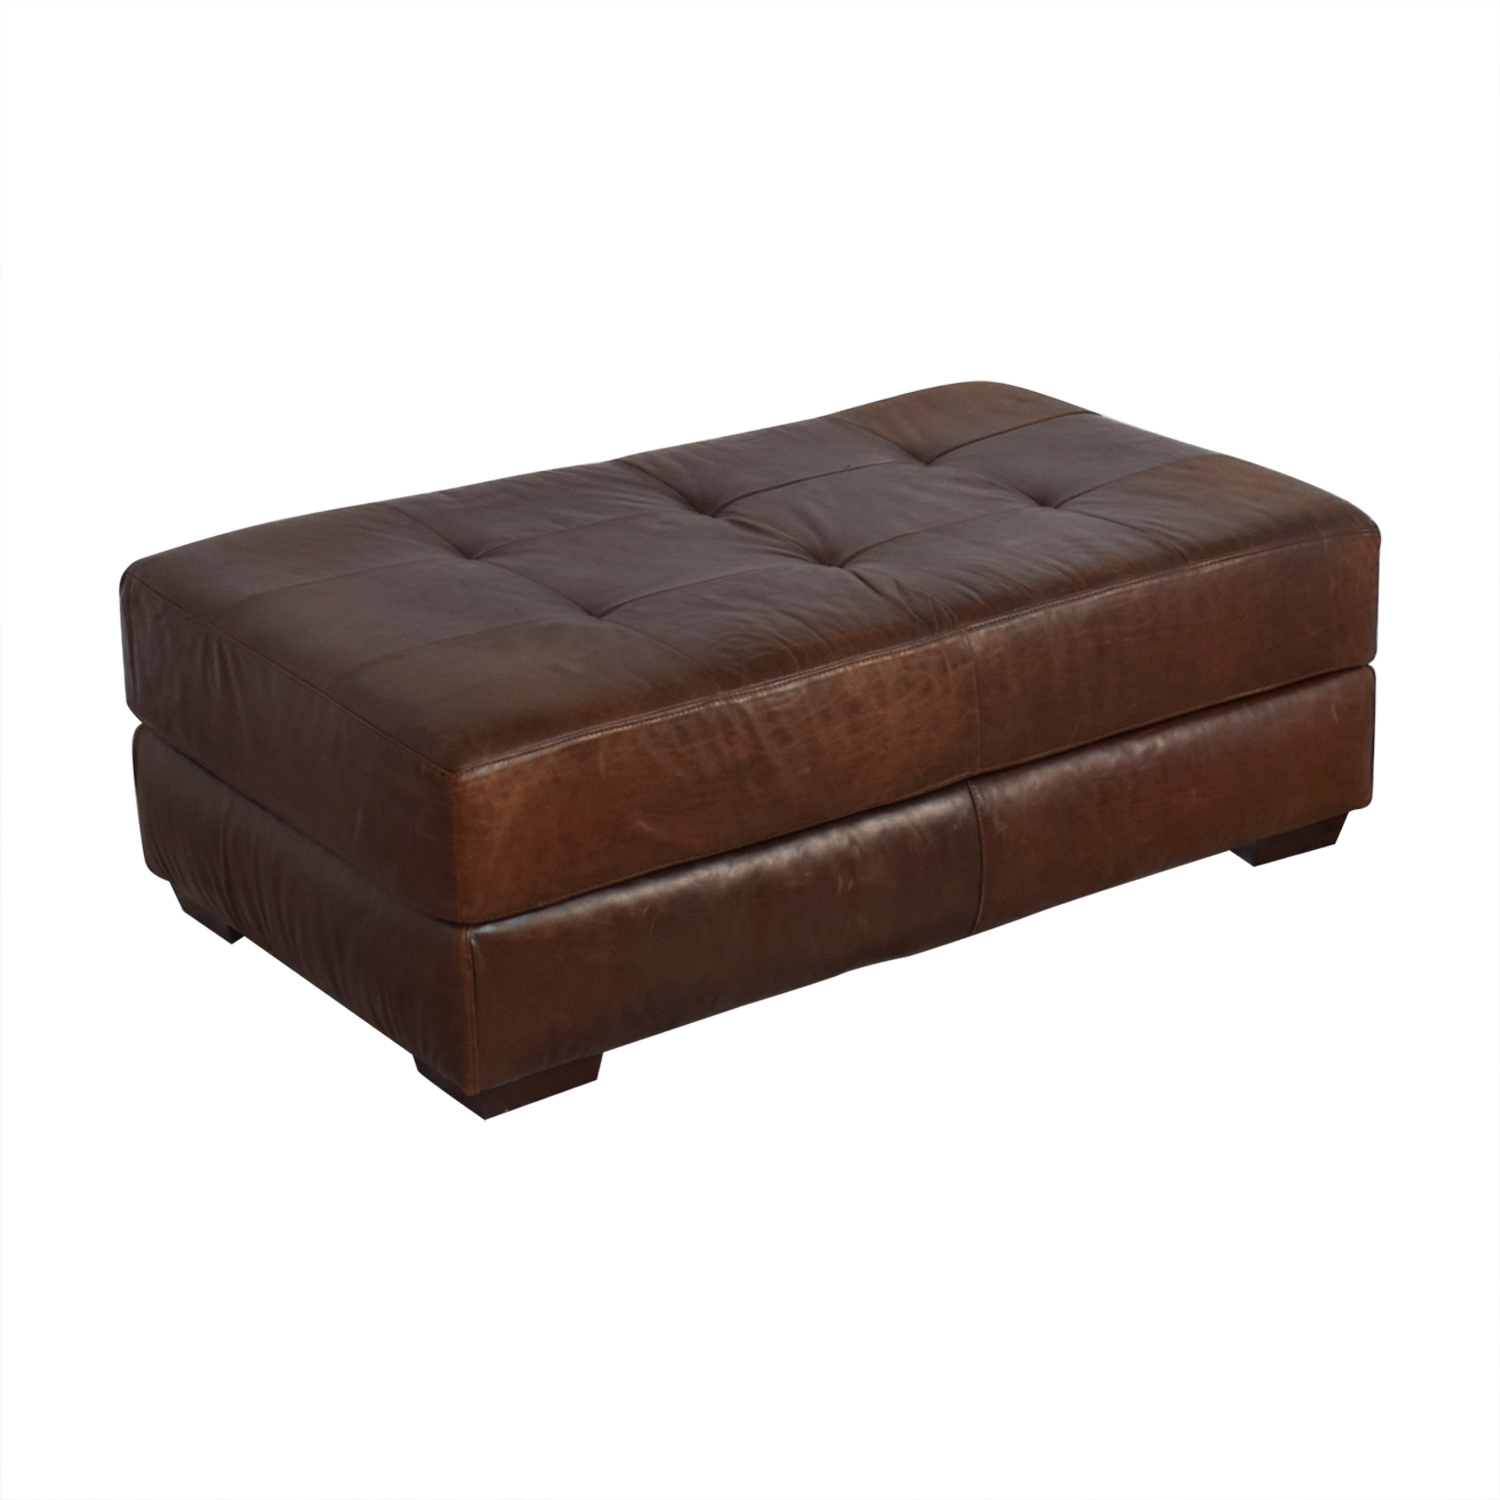 ABC Carpet & Home ABC Carpet & Home Leather Cocktail Ottoman on sale